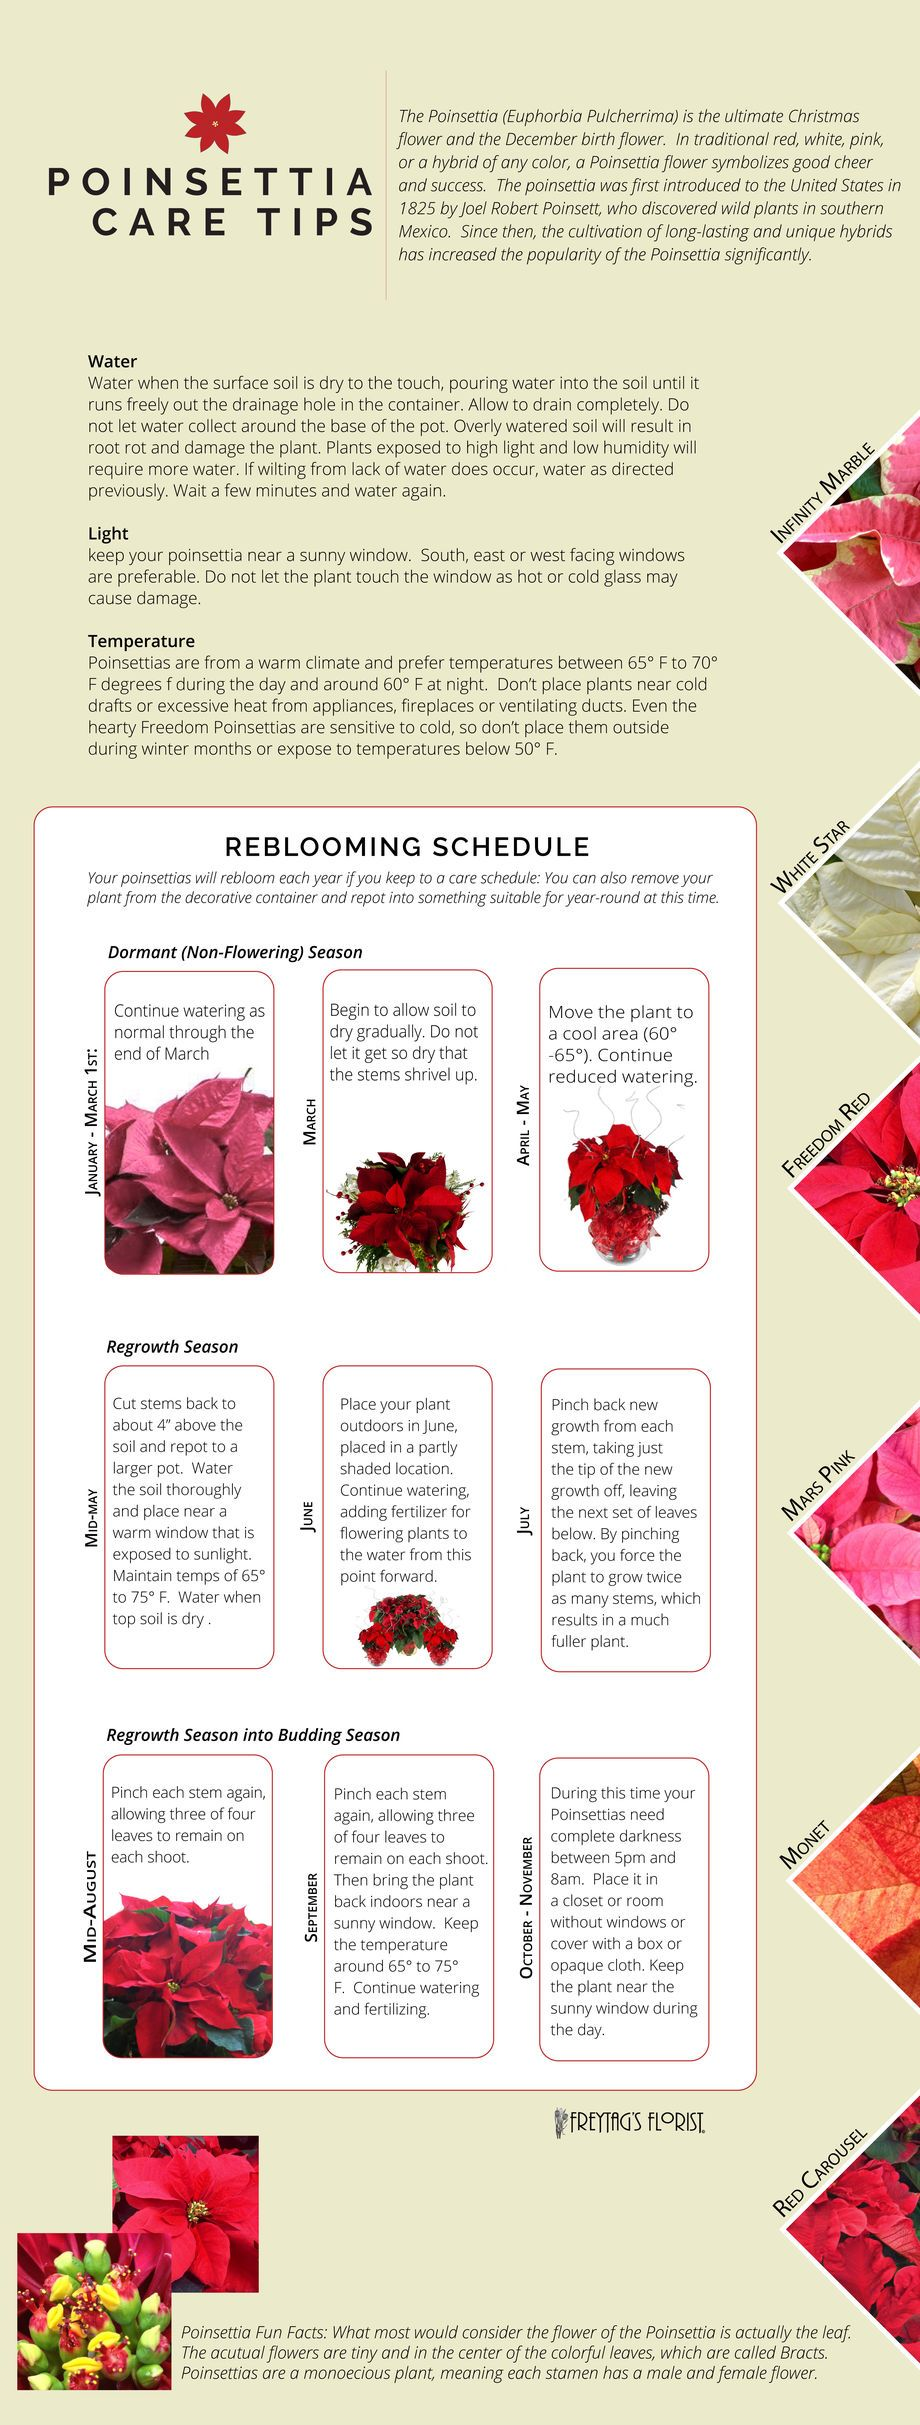 Poinsettia Care Amp Reblooming Tips Pro Tips From A